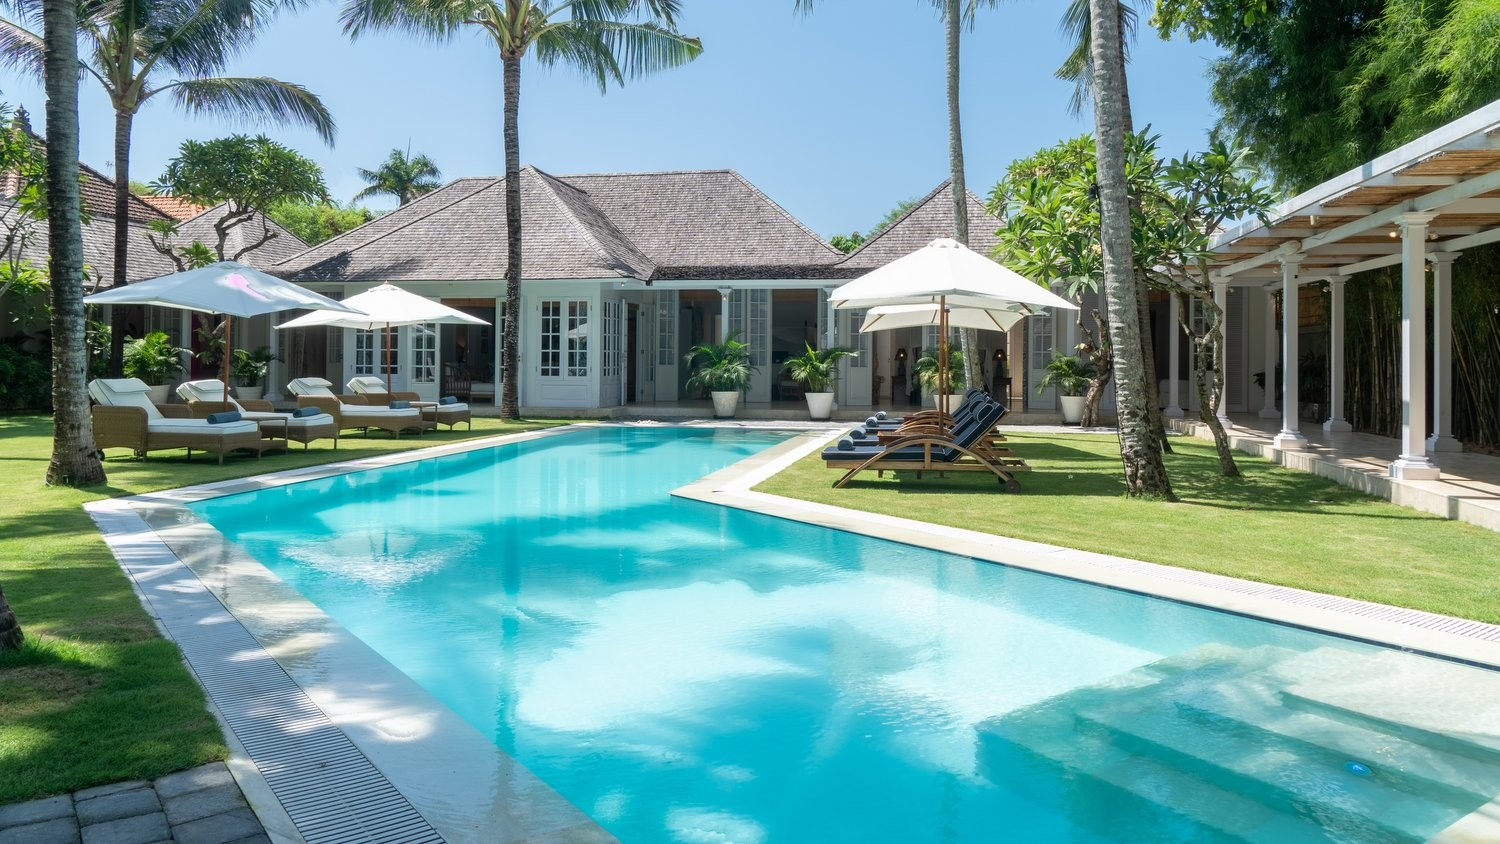 The Cotton House Bali - Seminyak Luxury Villas